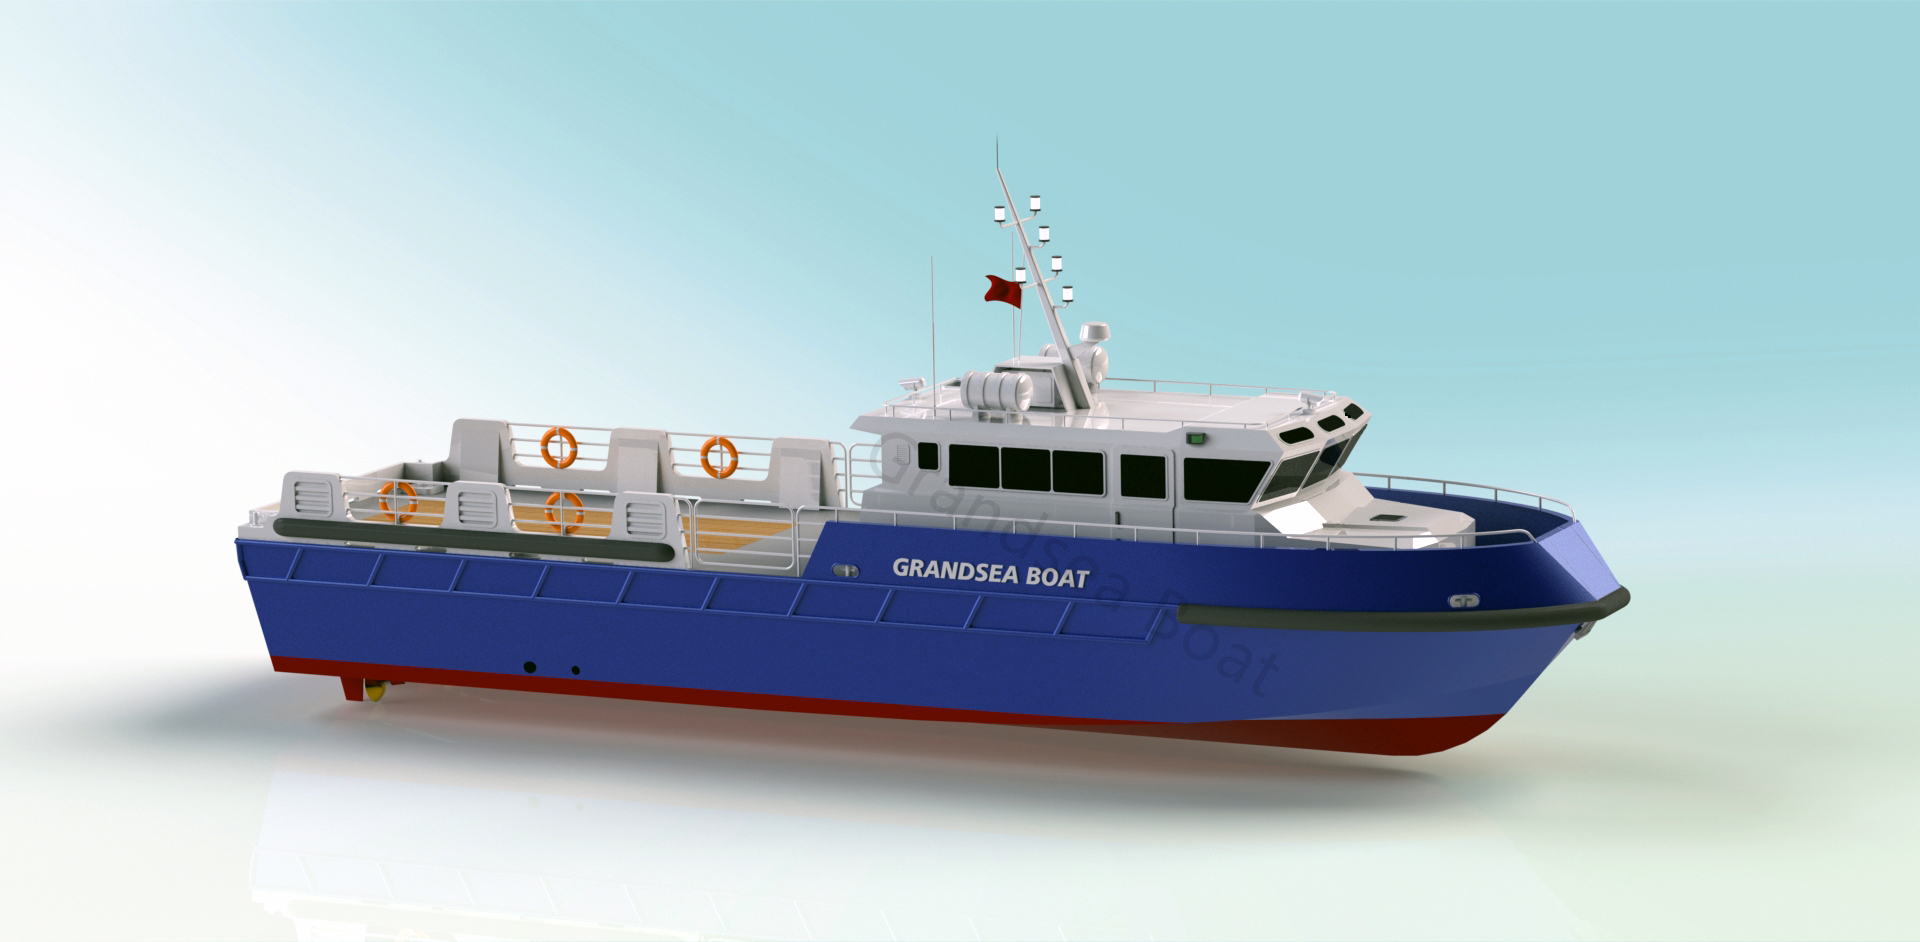 Grandsea 22m Aluminum Offshore Supply Boat/crew Boat/work Boat for Sale